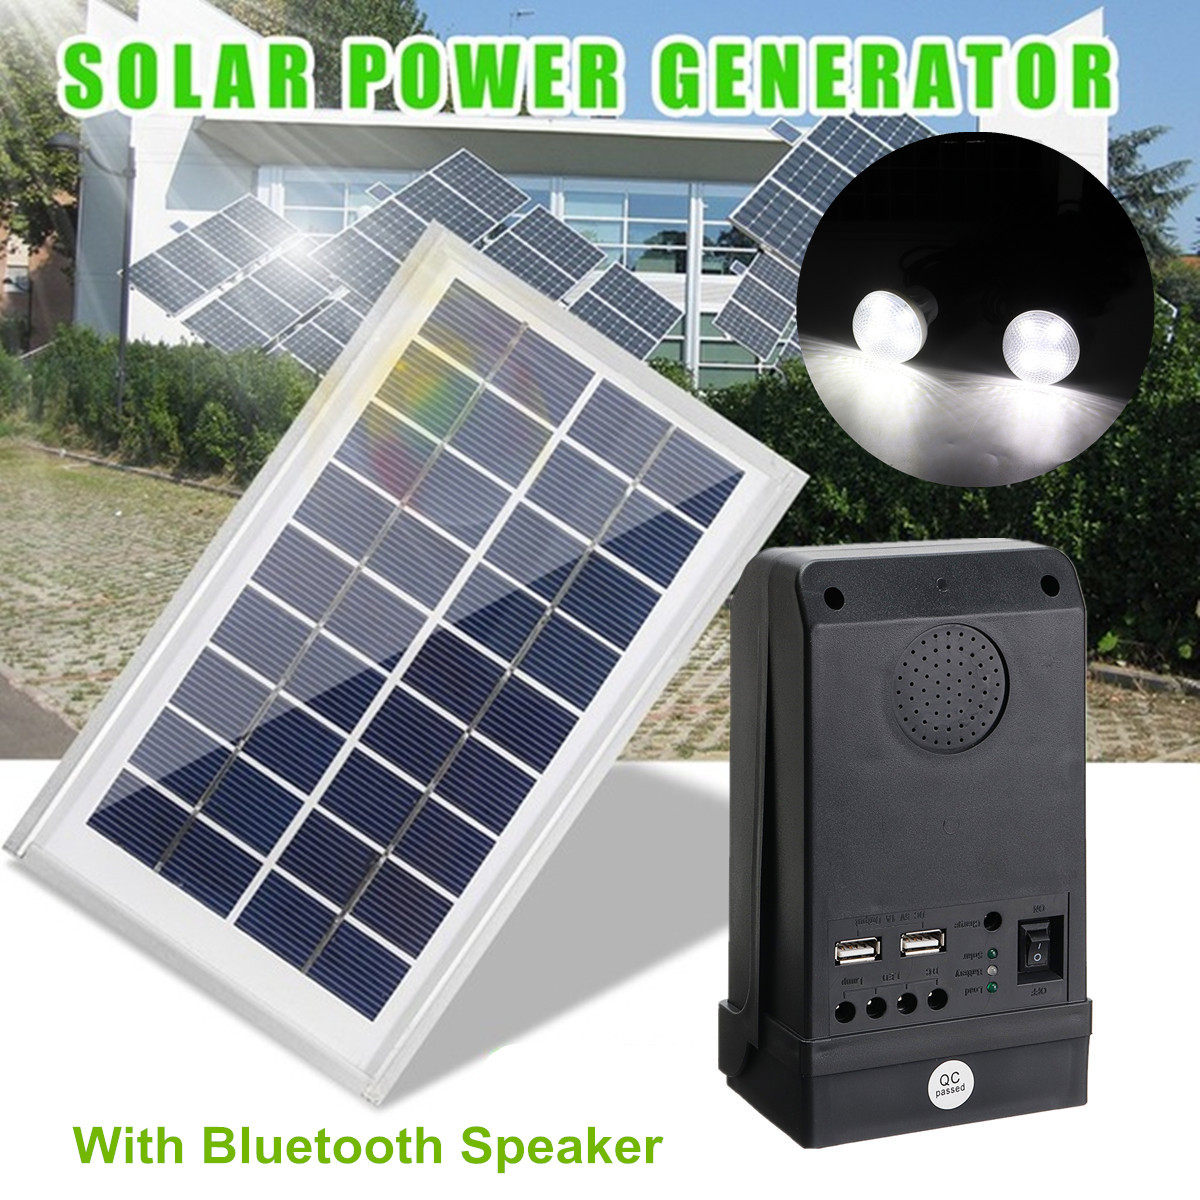 Solar Panel Power Generator 5V 2A LED Light USB Charger System with Bluetooth Speaker Reusable Durable Camping Large Capacity diy 5v 2a voltage regulator junction box solar panel charger special kit